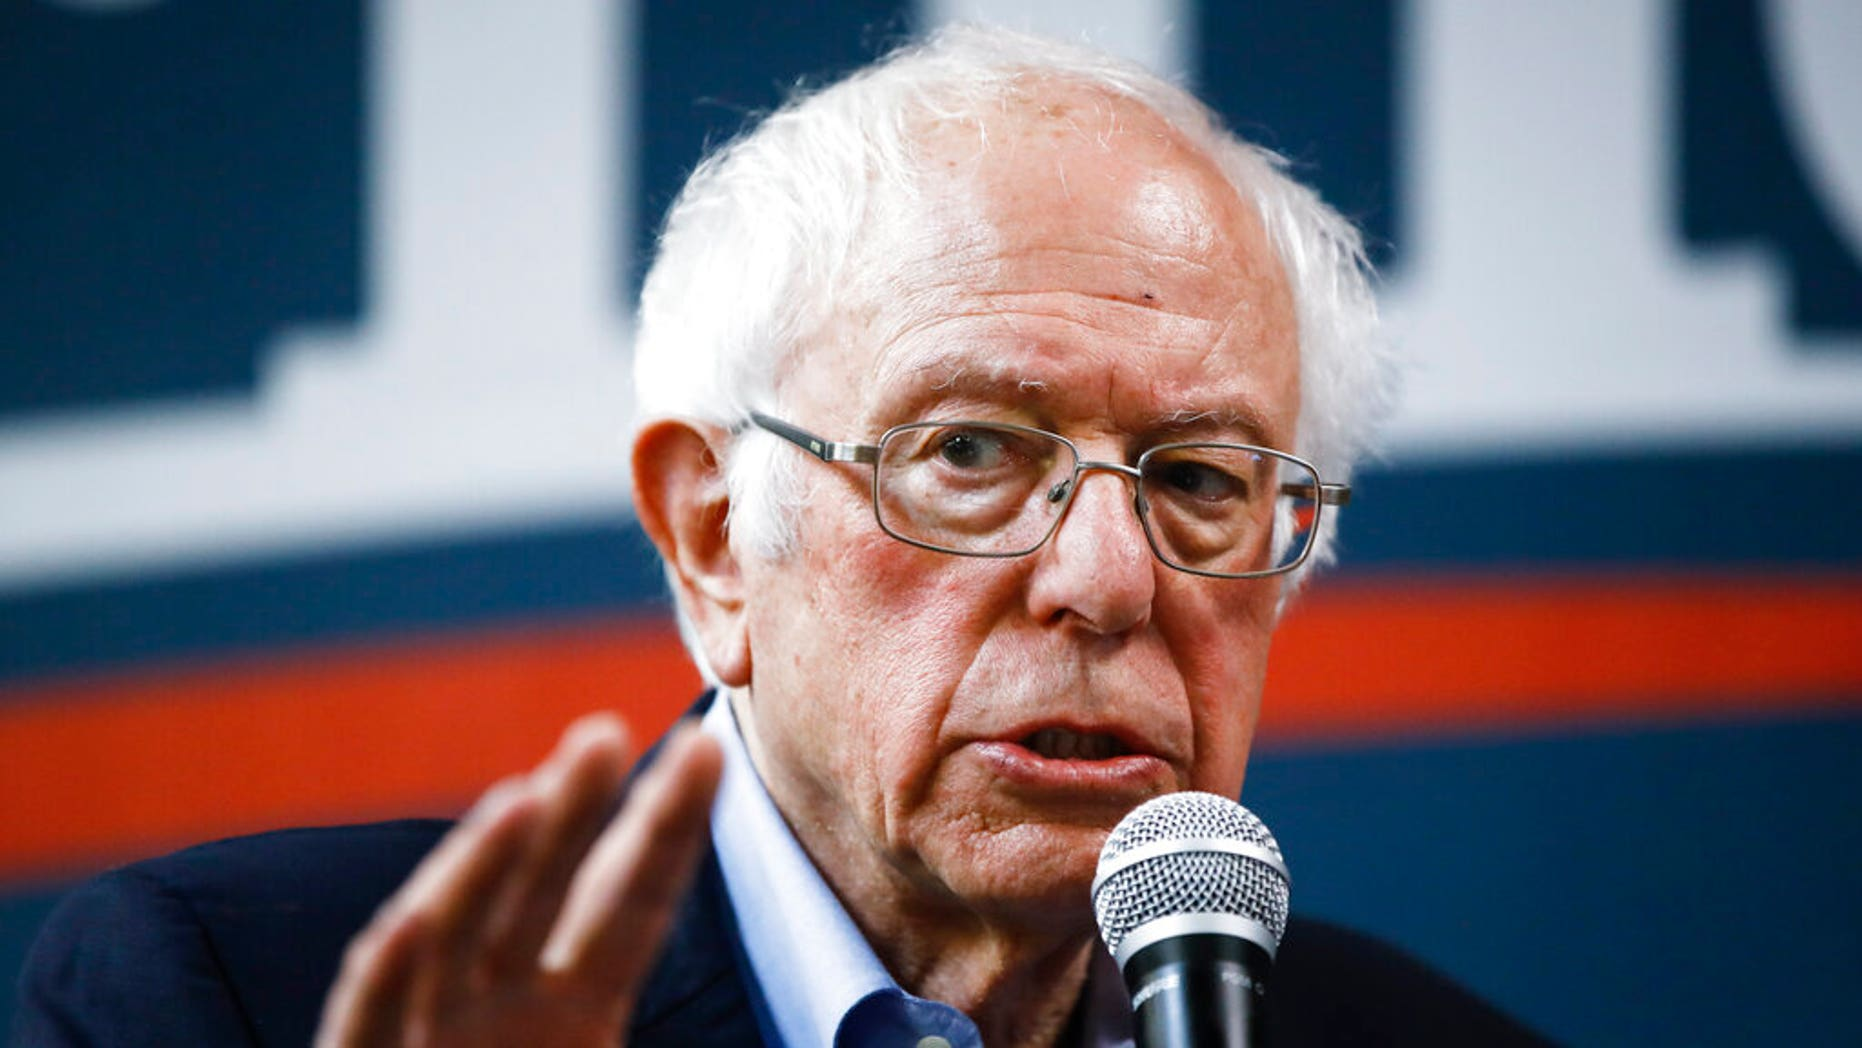 Democratic presidential candidate Sen. Bernie Sanders, I-Vt., speaks at a campaign field office, Sunday, Feb. 2, 2020, in Newton, Iowa. (AP Photo/Matt Rourke)